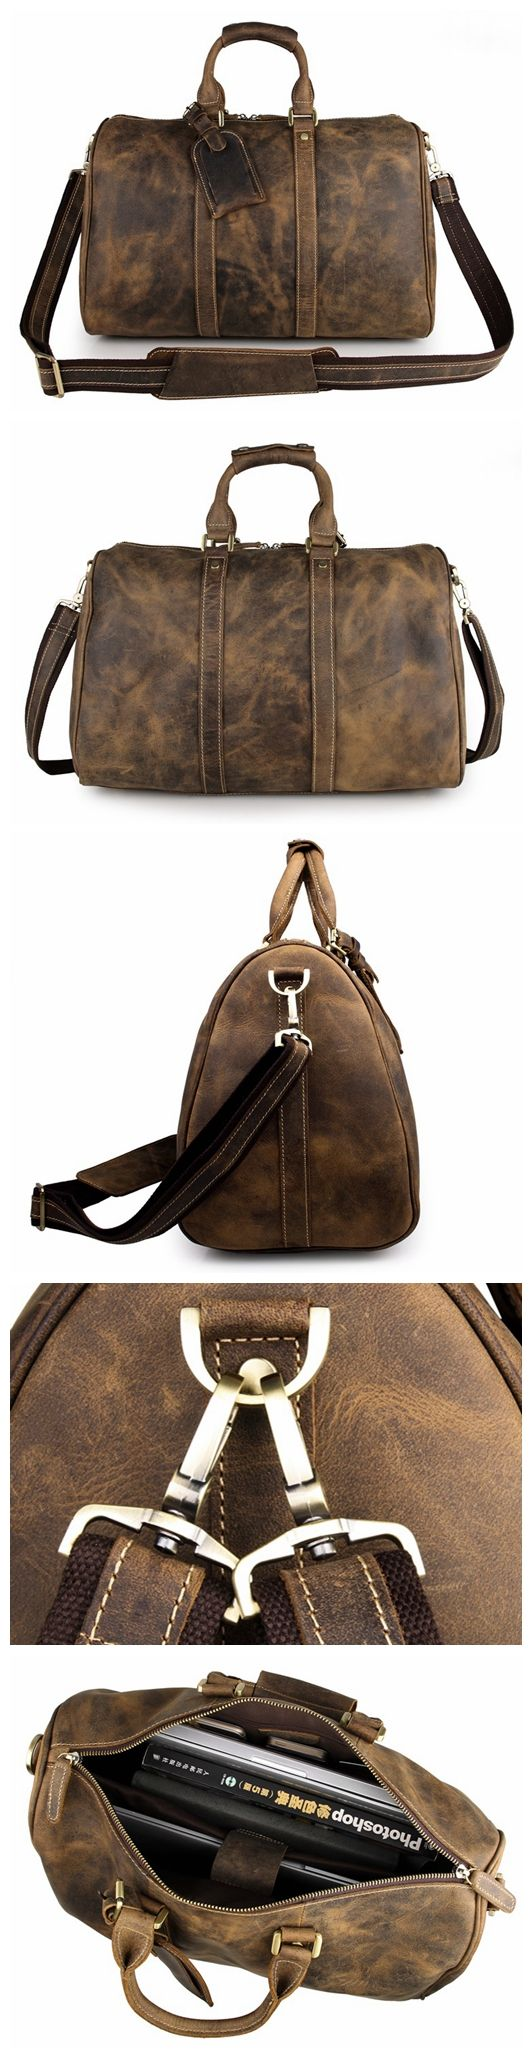 Handcrafted Vintage Style Top Grain Calfskin Leather Travel Bag Duffle Bag Holdall Luggage